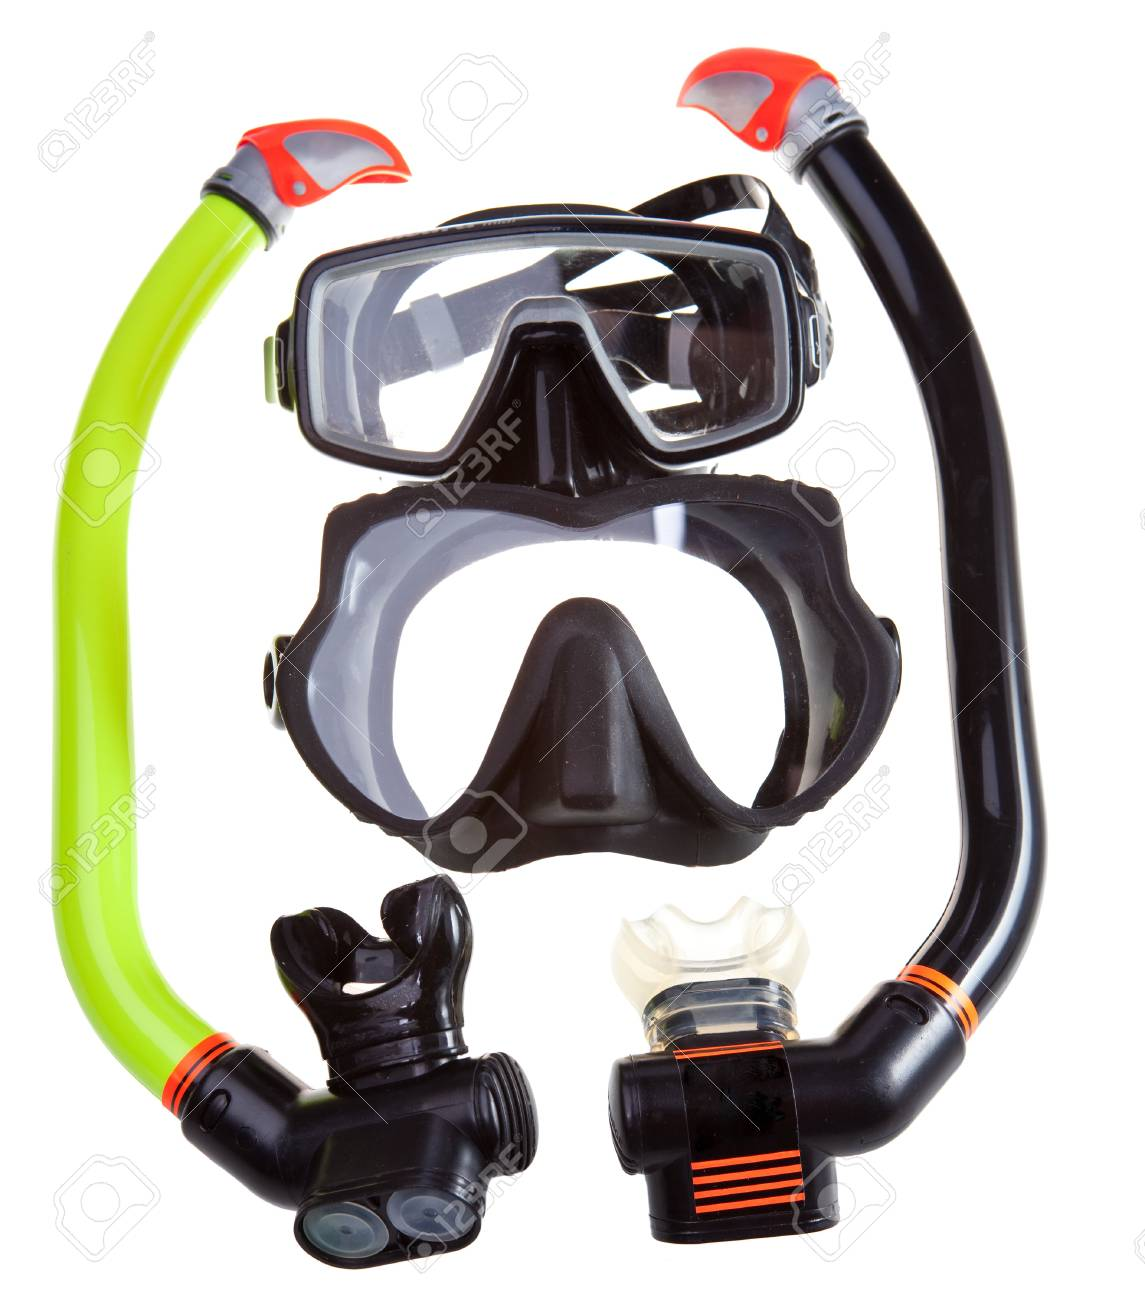 Tube for diving (snorkel) and mask Stock Photo - 14272577